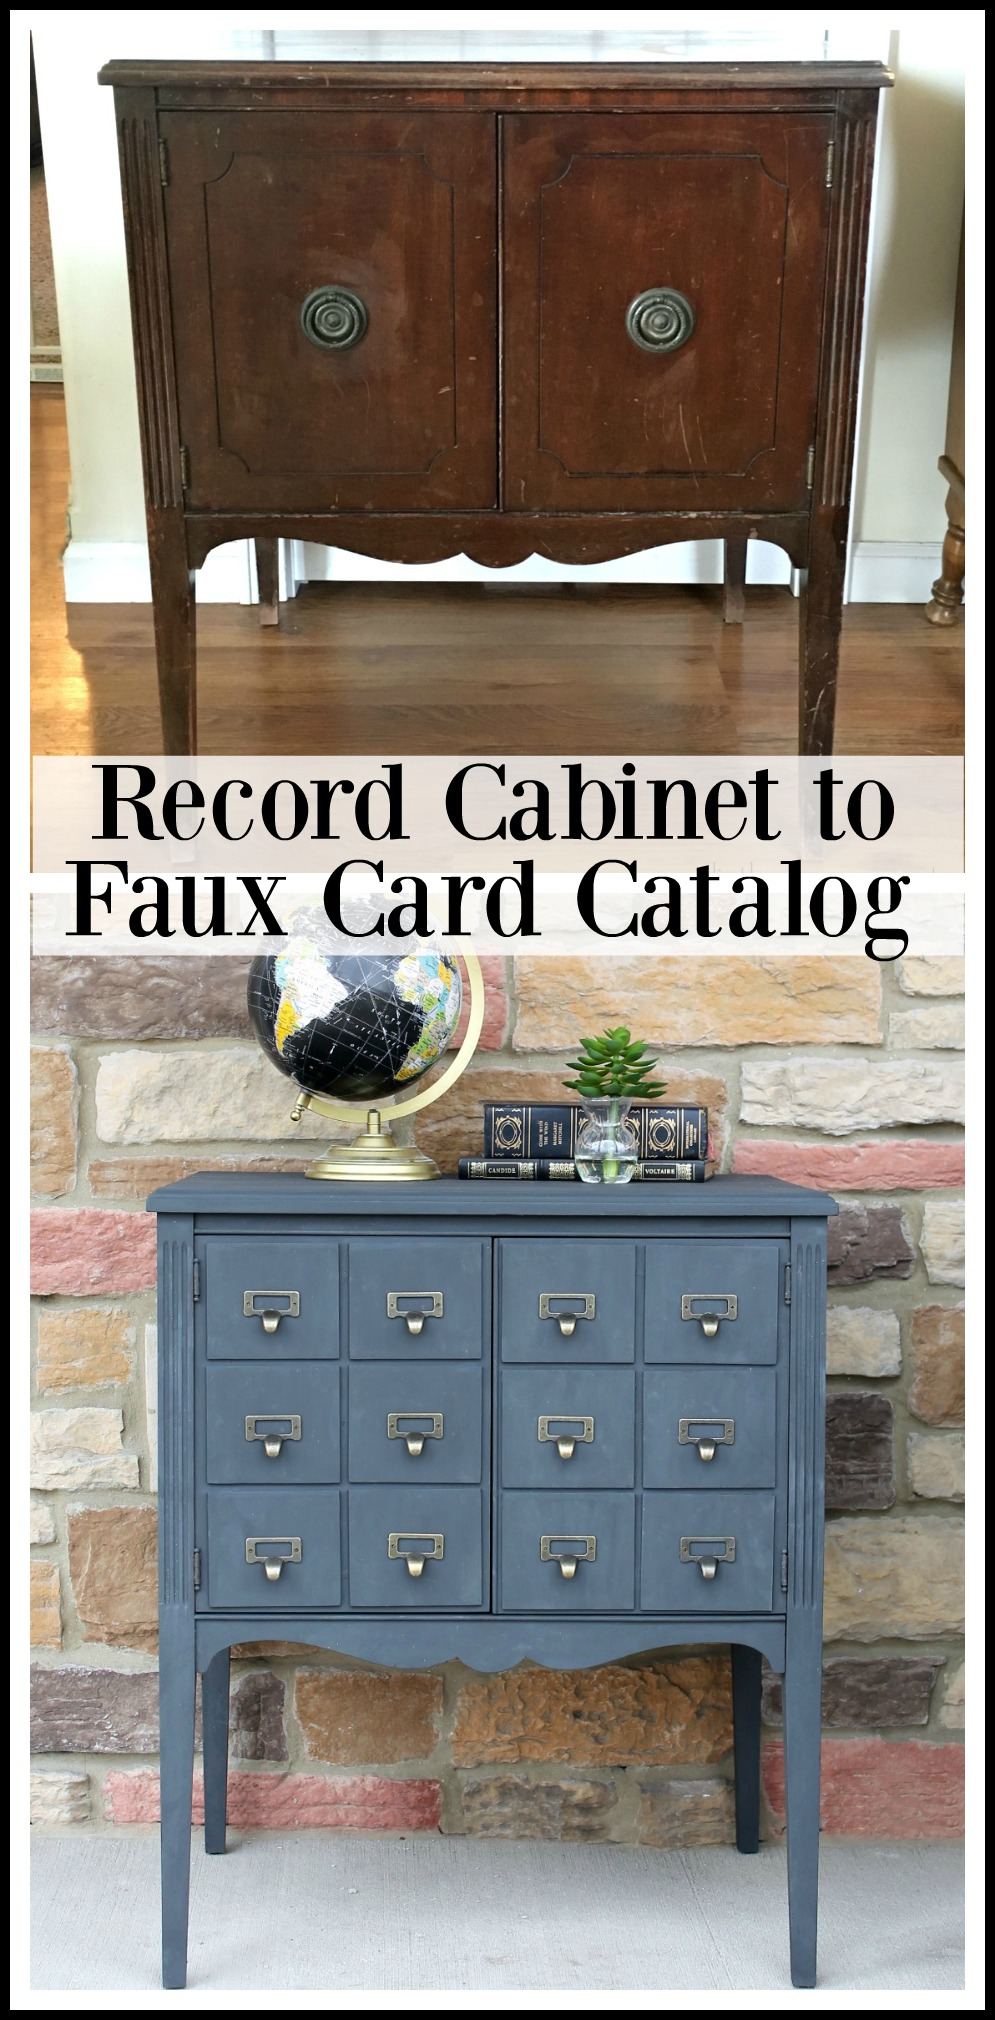 This repainted cabinet has lots of storage and adds a pop of color.